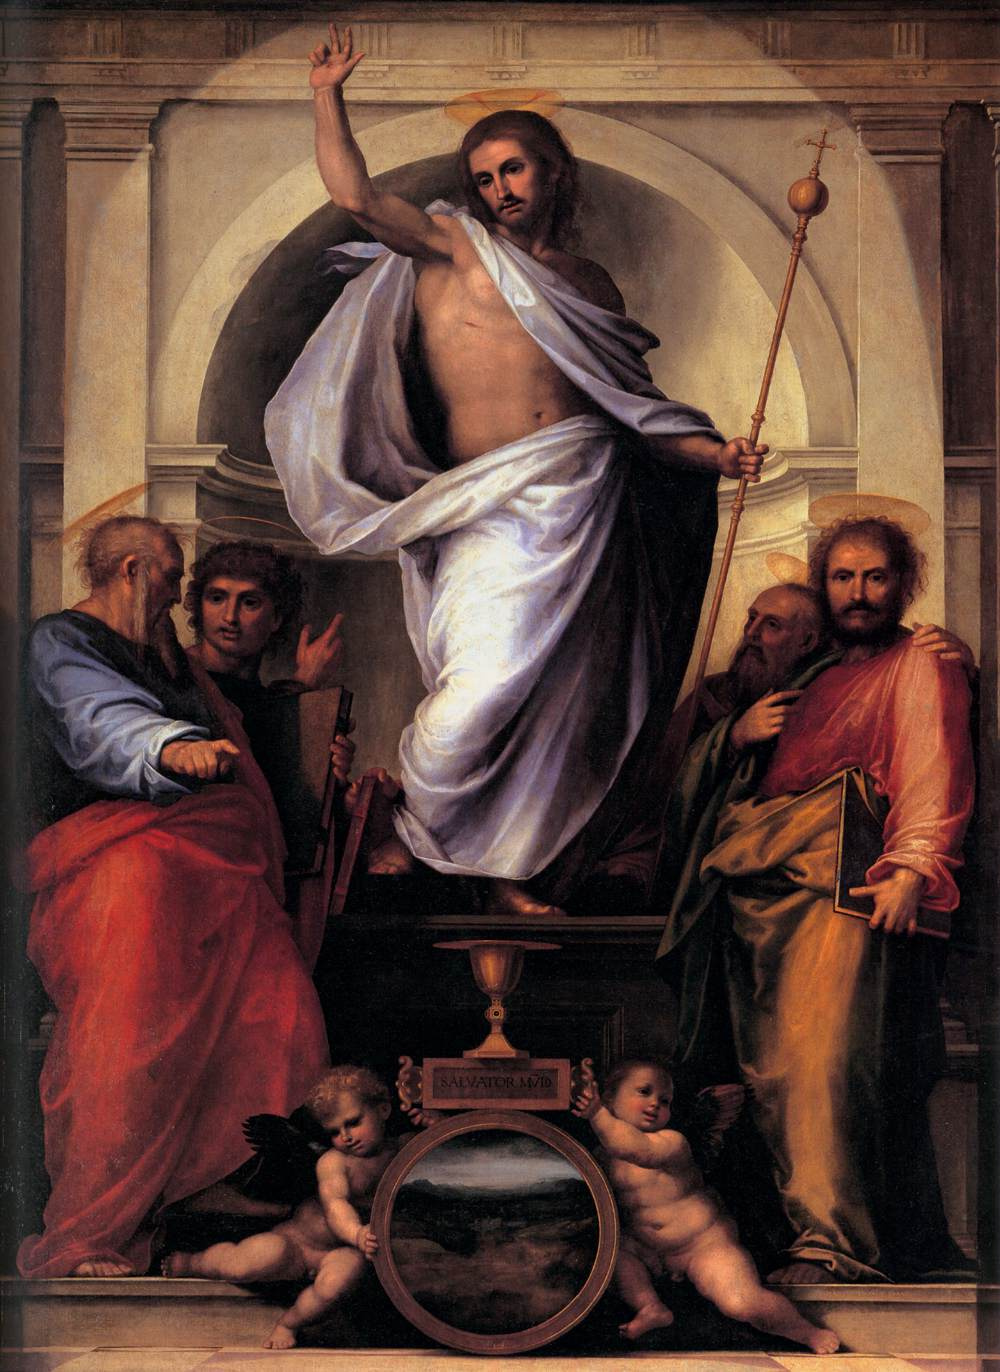 Fra Bartolomeo. Christ with the Four Evangelists